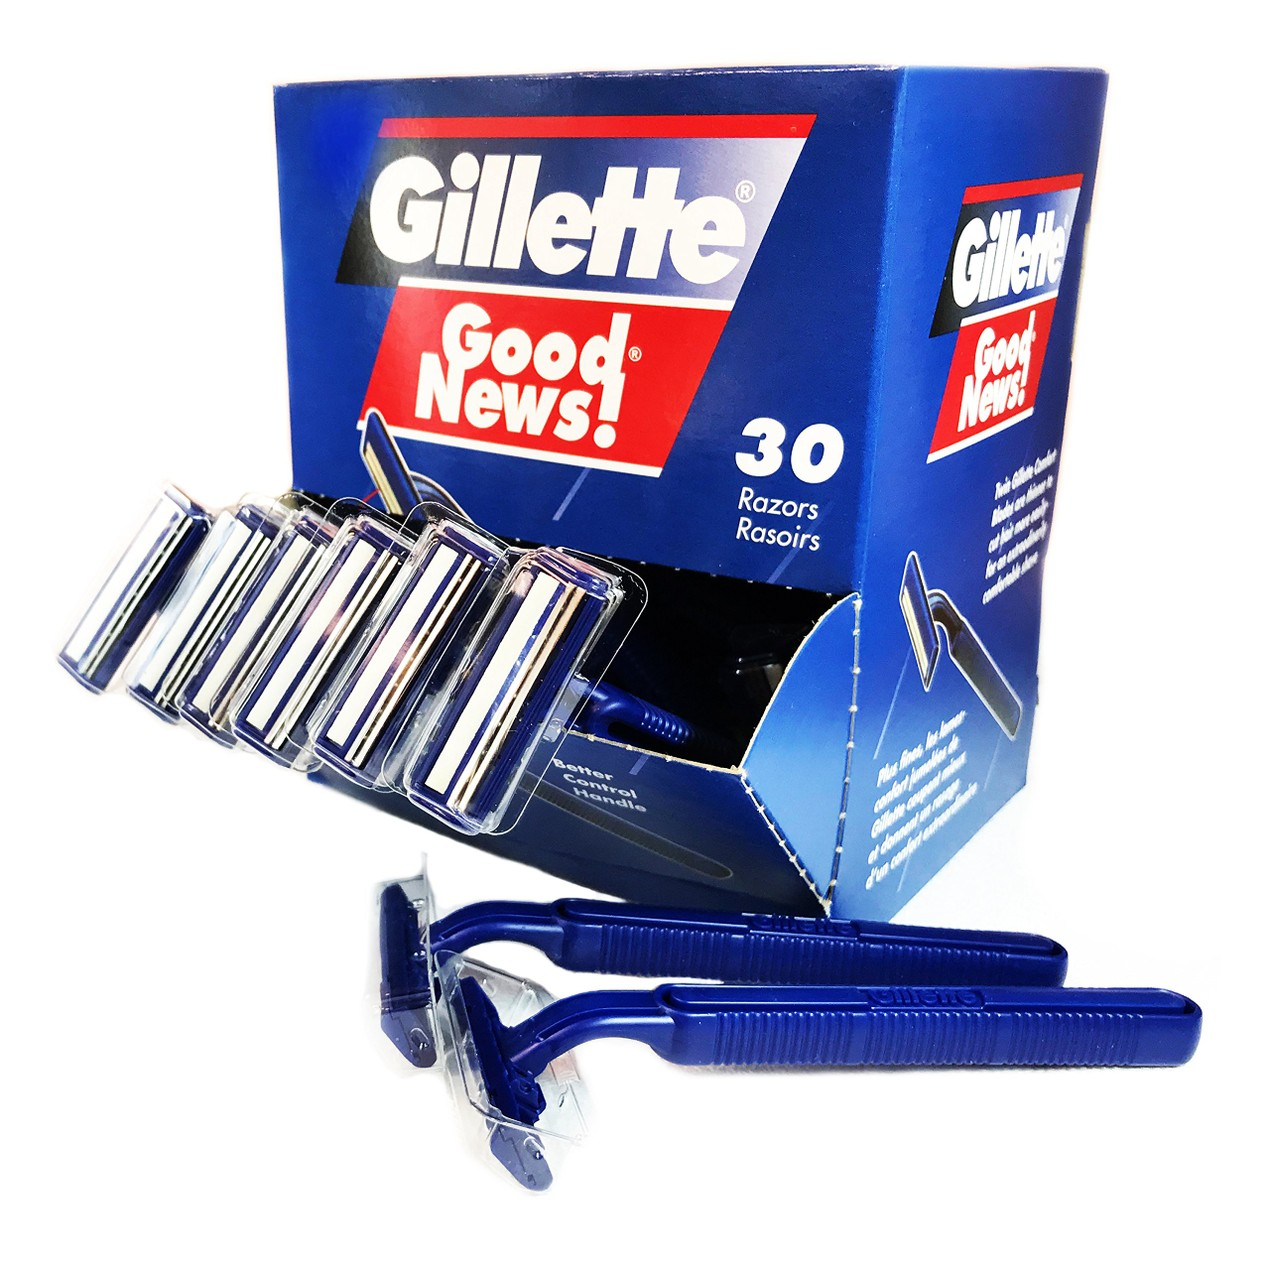 30-Pack Gillette Good News! Disposable Razors